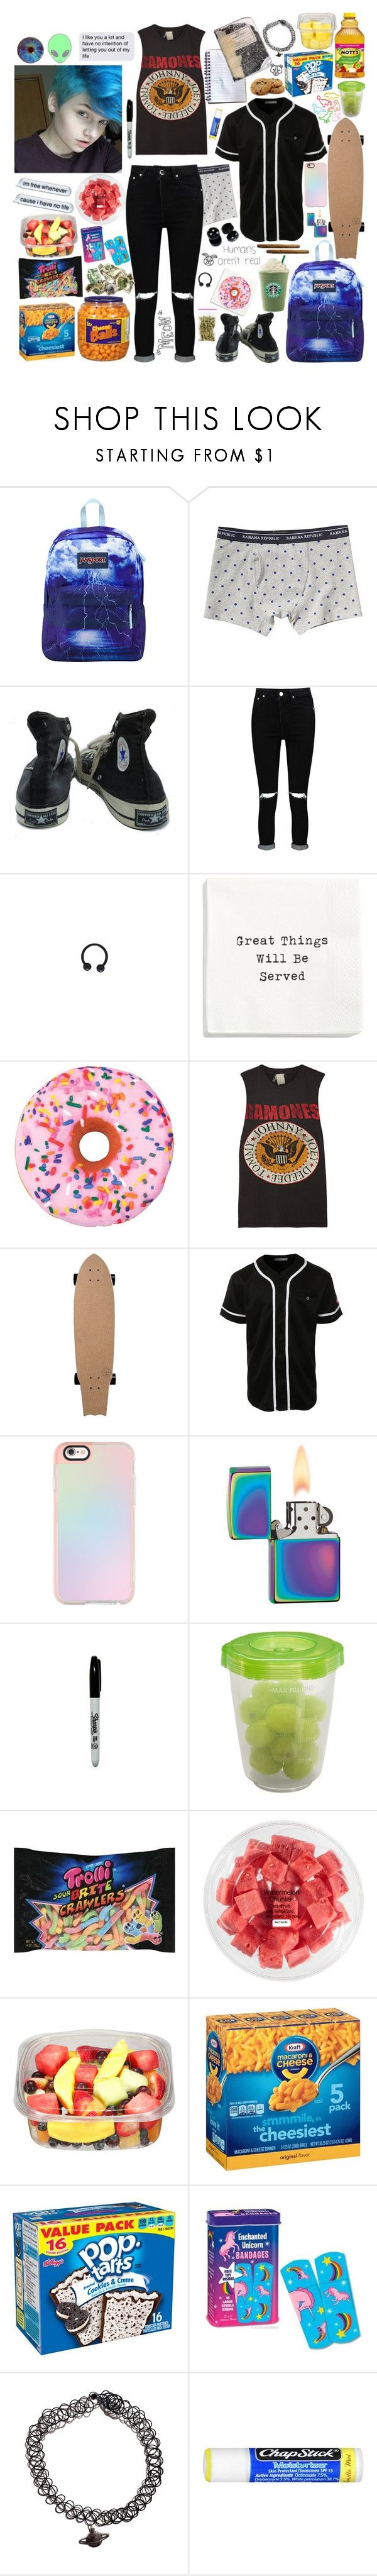 """Can we go to Walmart after coffee? {Ash"" by writingandfasionarelyfe ❤ liked on Polyvore featuring JanSport, Banana Republic, Converse, Boohoo, Iscream, MadeWorn, LE3NO, Casetify, Zippo and American Apparel"